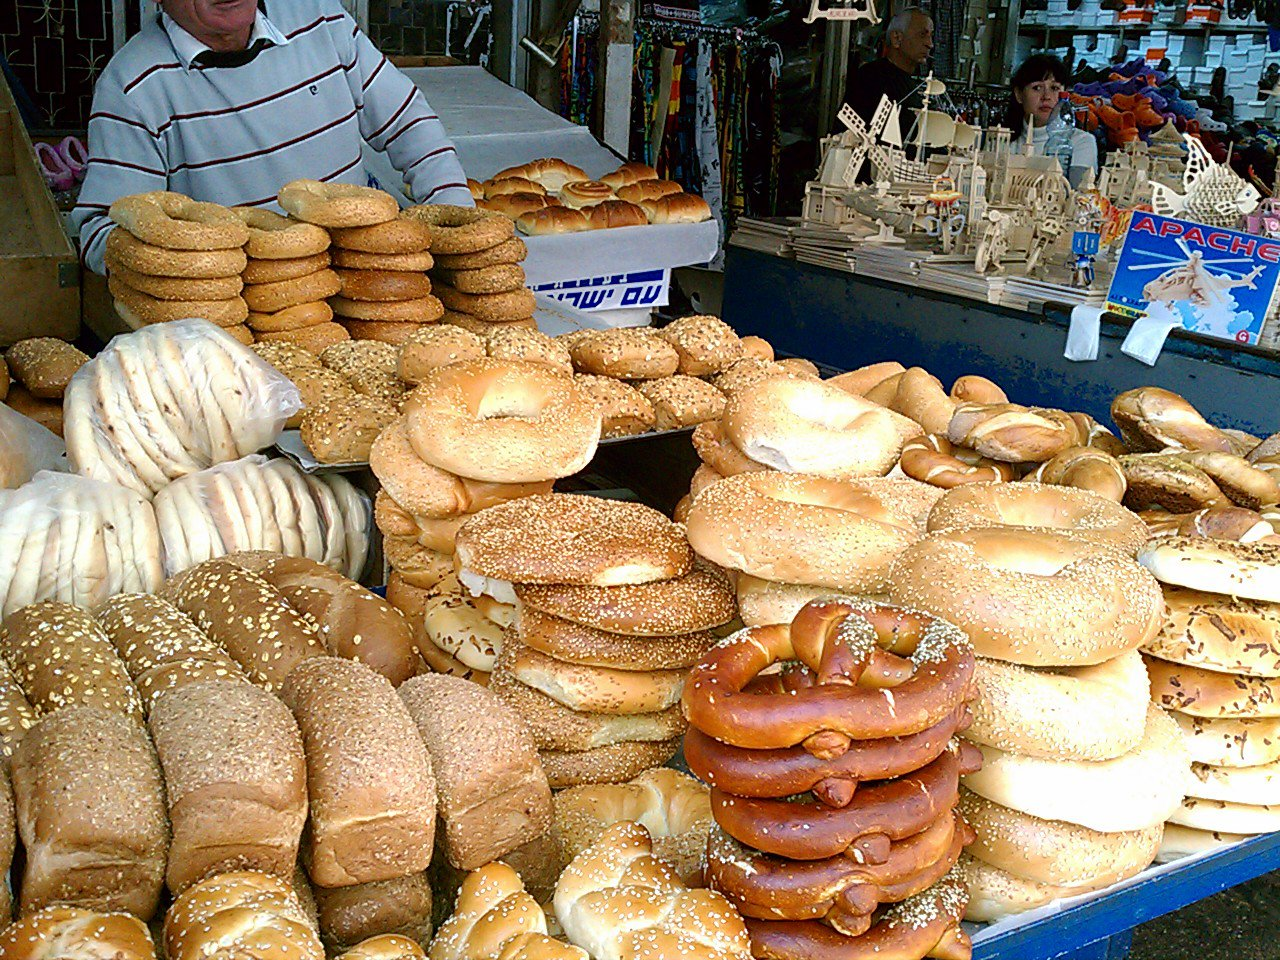 Tel Aviv marketplace – wow look at all that bread…